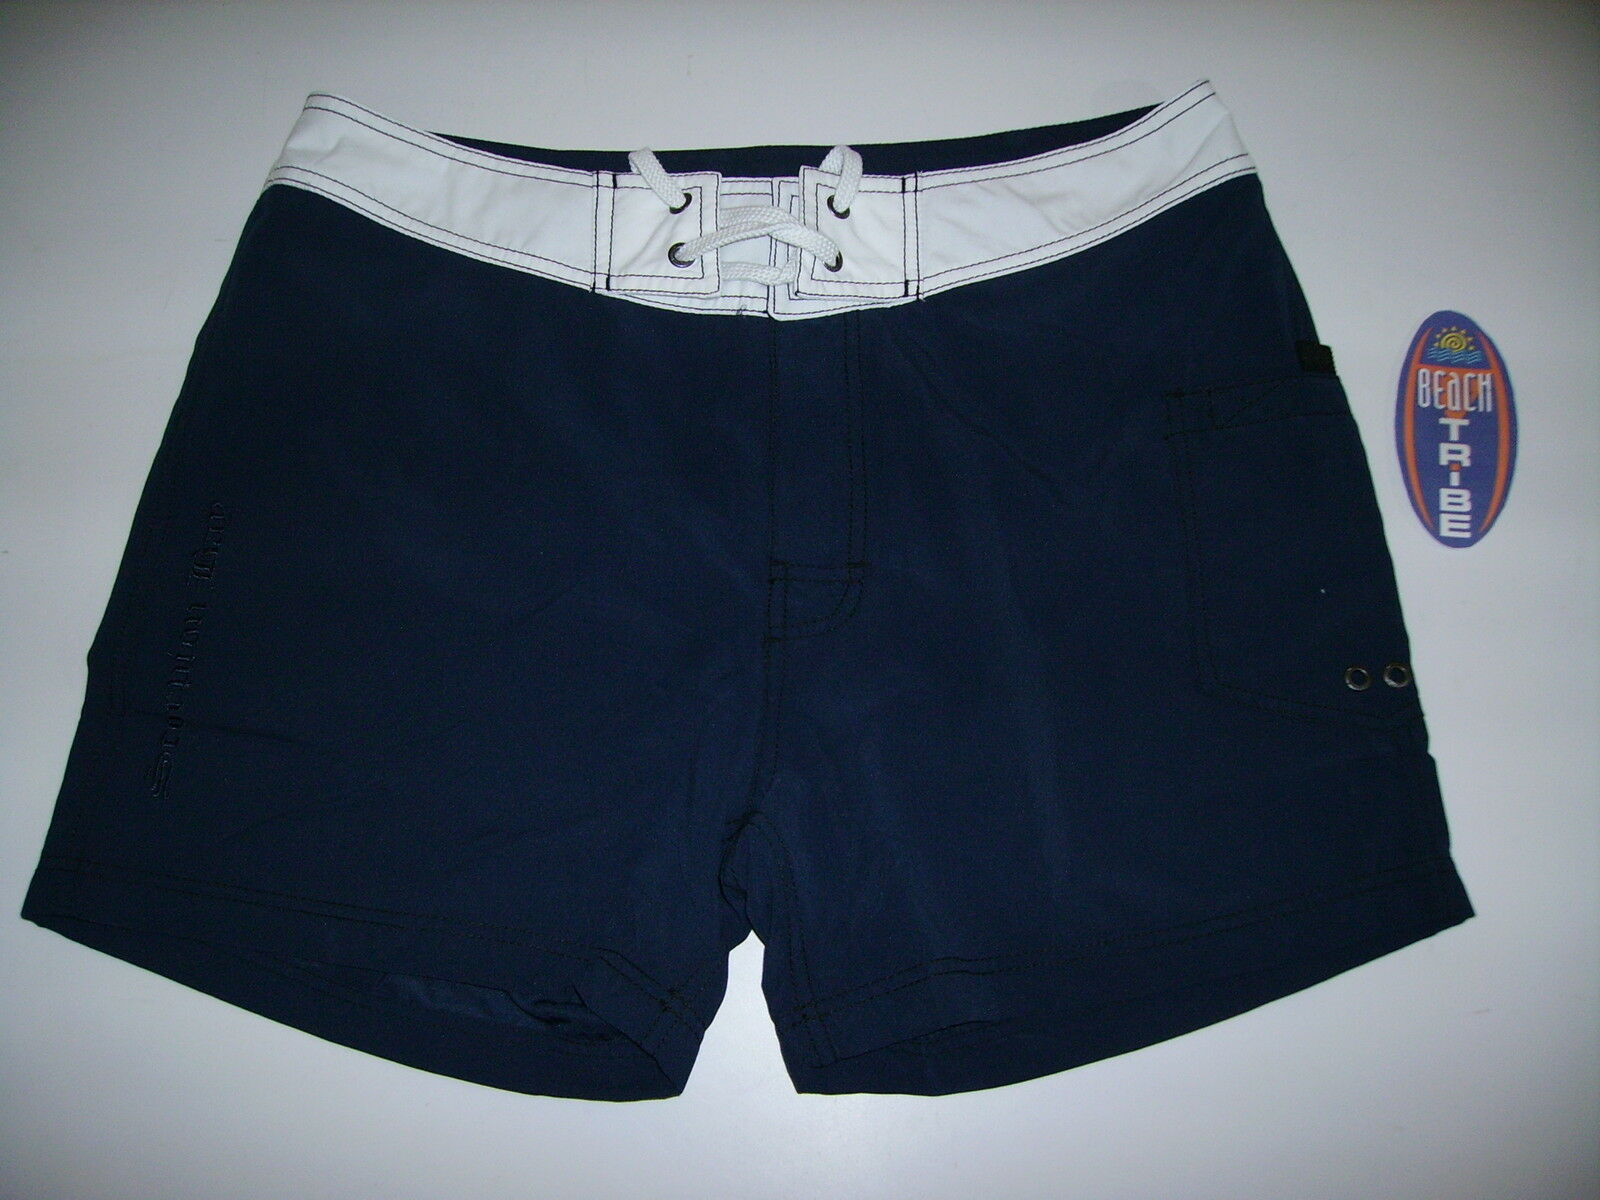 SCORPION BAY BOARDSHORT SHORTS SEA COSTUME MBS2703 NAVY blueE WHITE 30